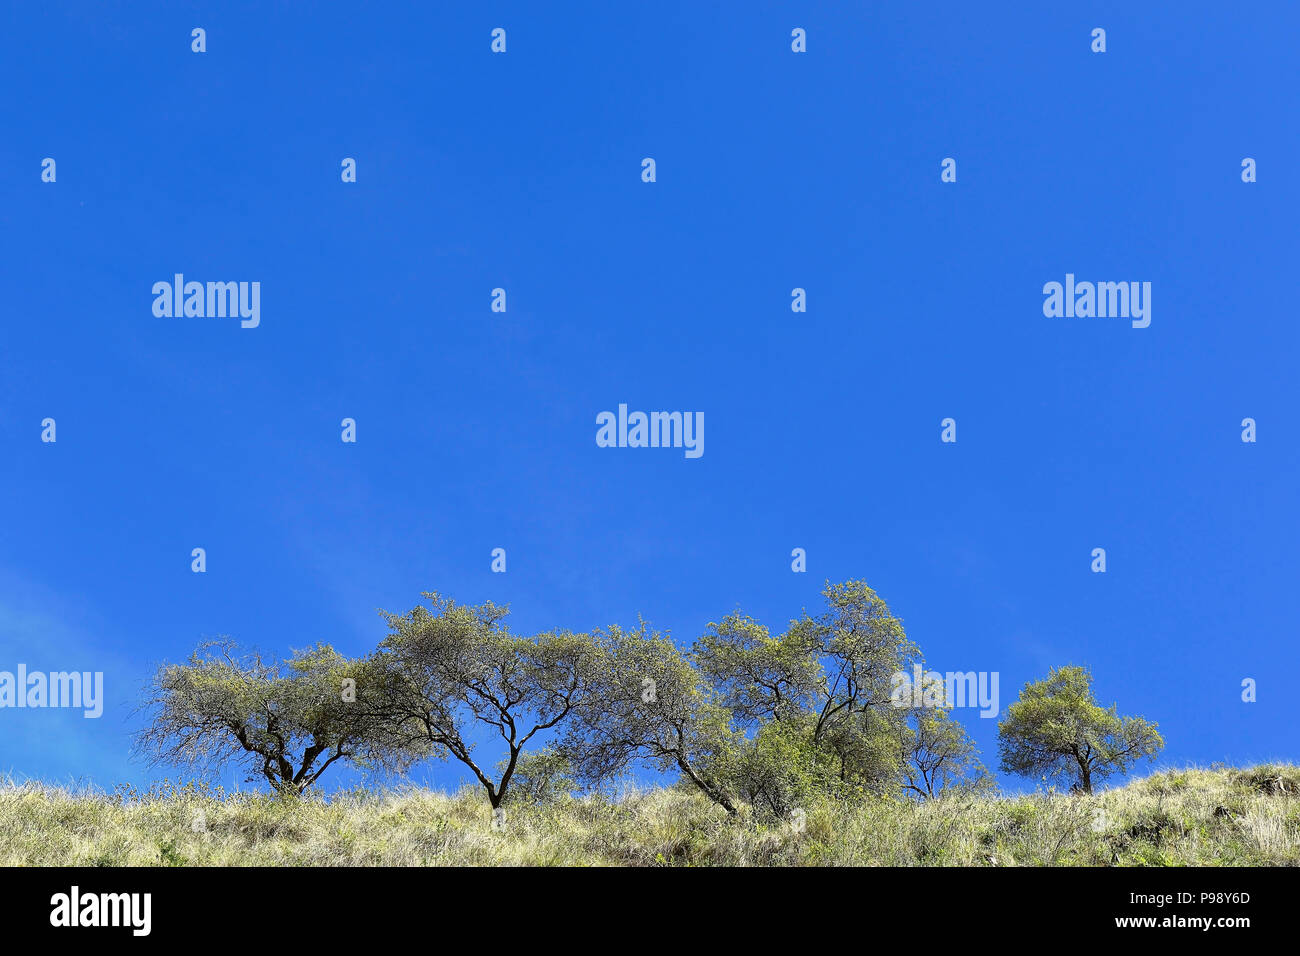 Trees on the top of the mountain trimmed over the blue sky - Stock Image